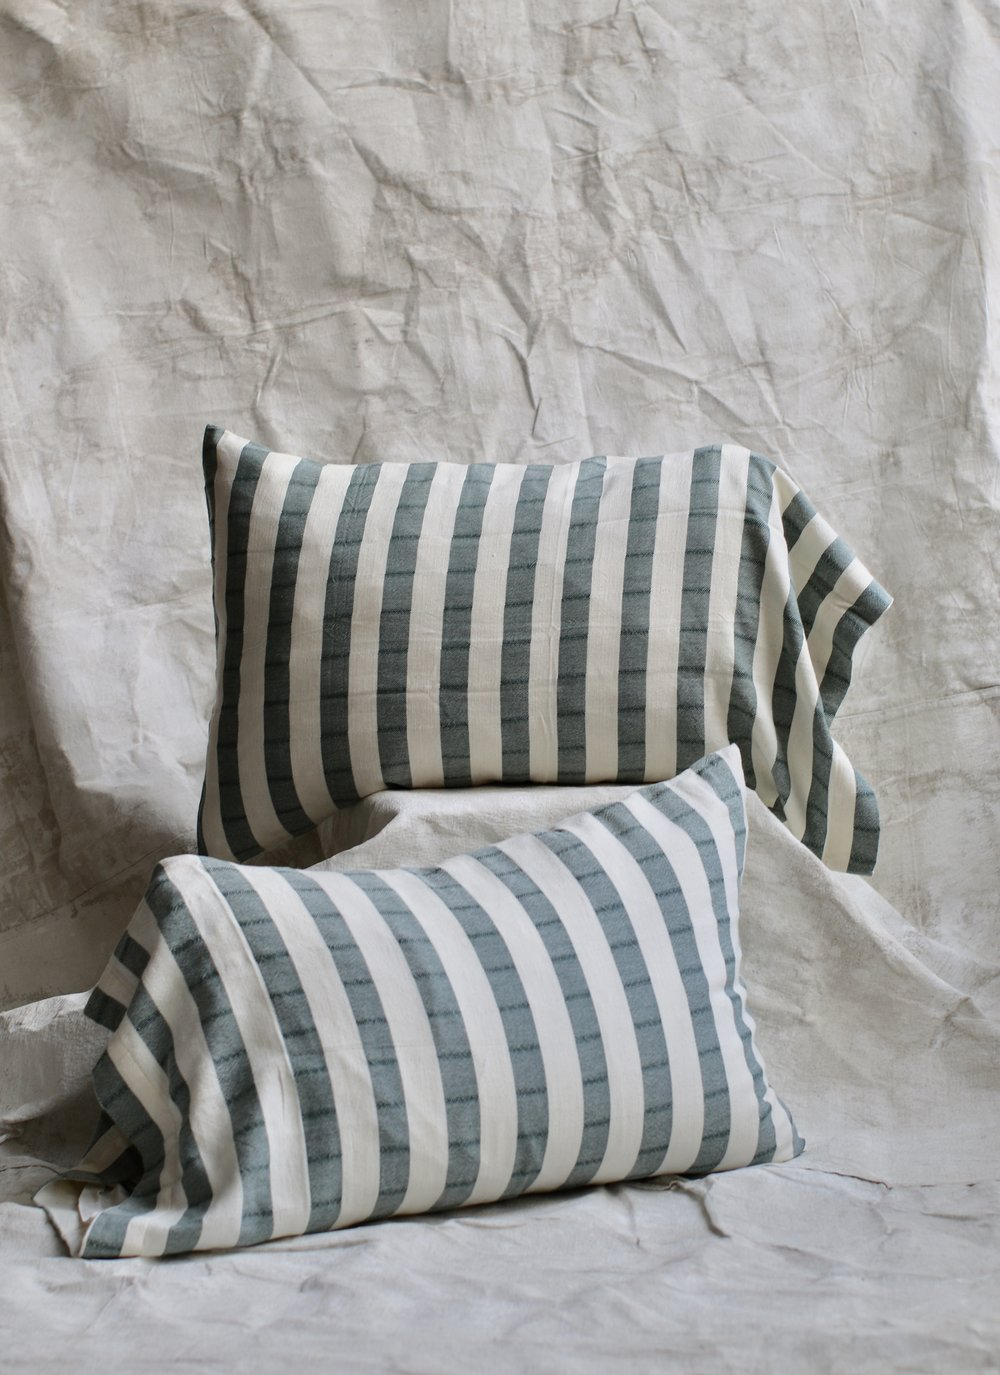 Cotton Stripped Standard Pillowcase set - Hunter Green $68